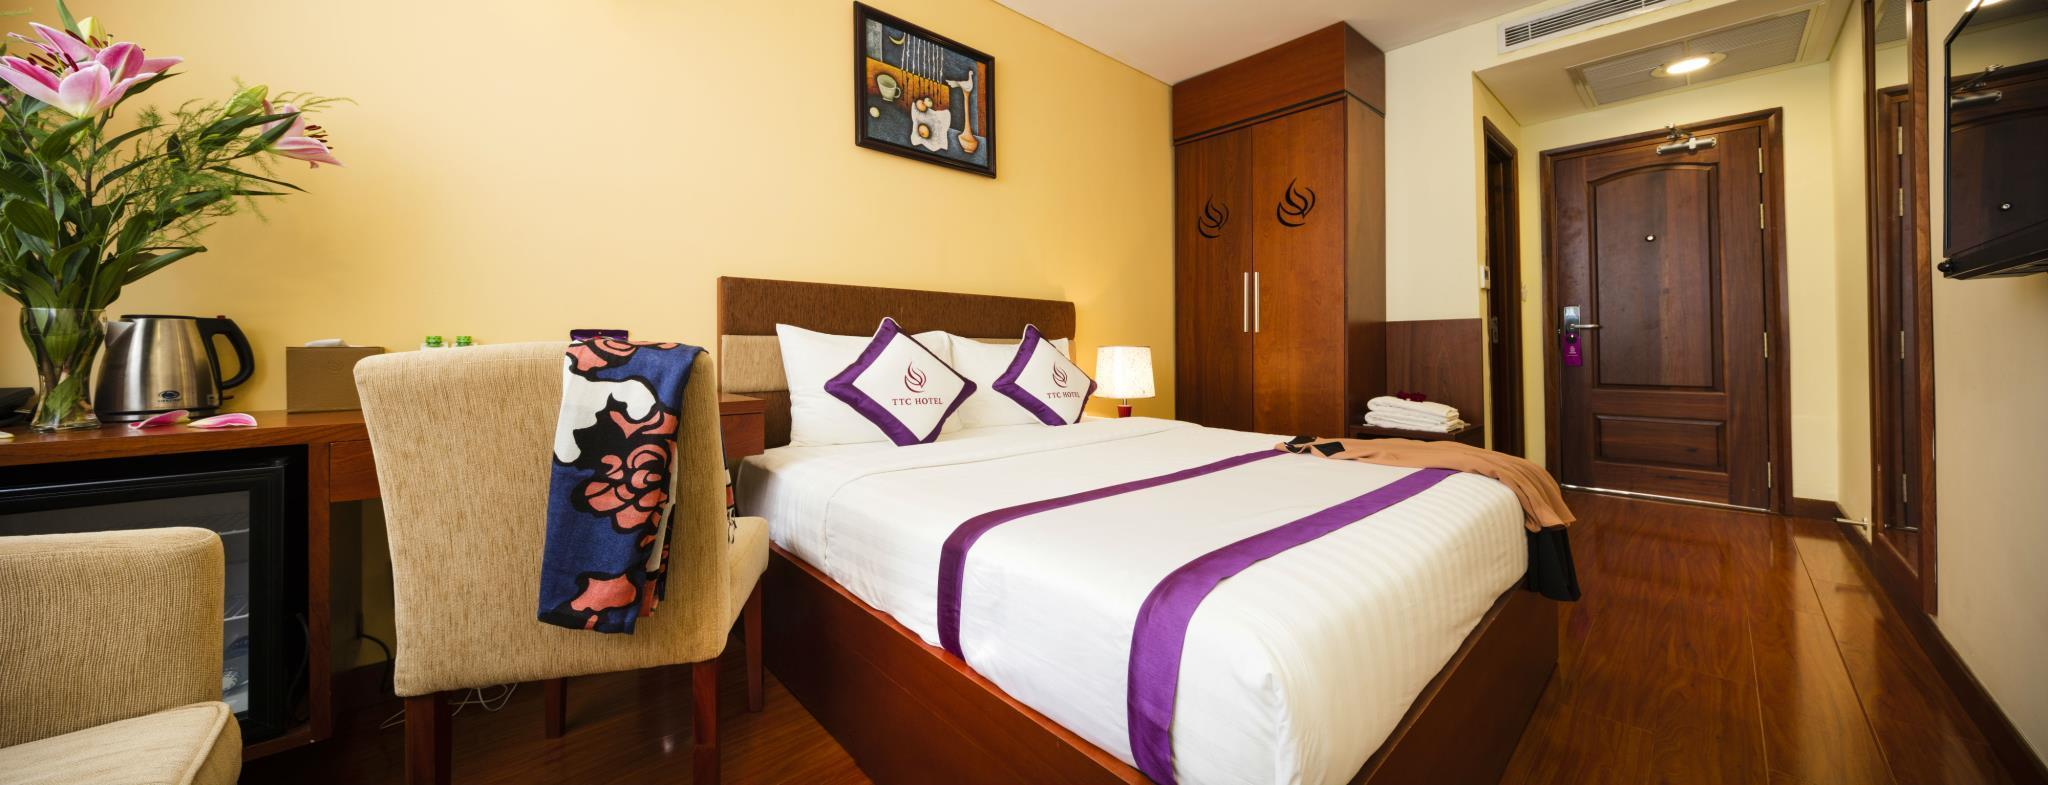 Ttc Hotel Deluxe Saigon In Ho Chi Minh City Room Deals Photos Reviews